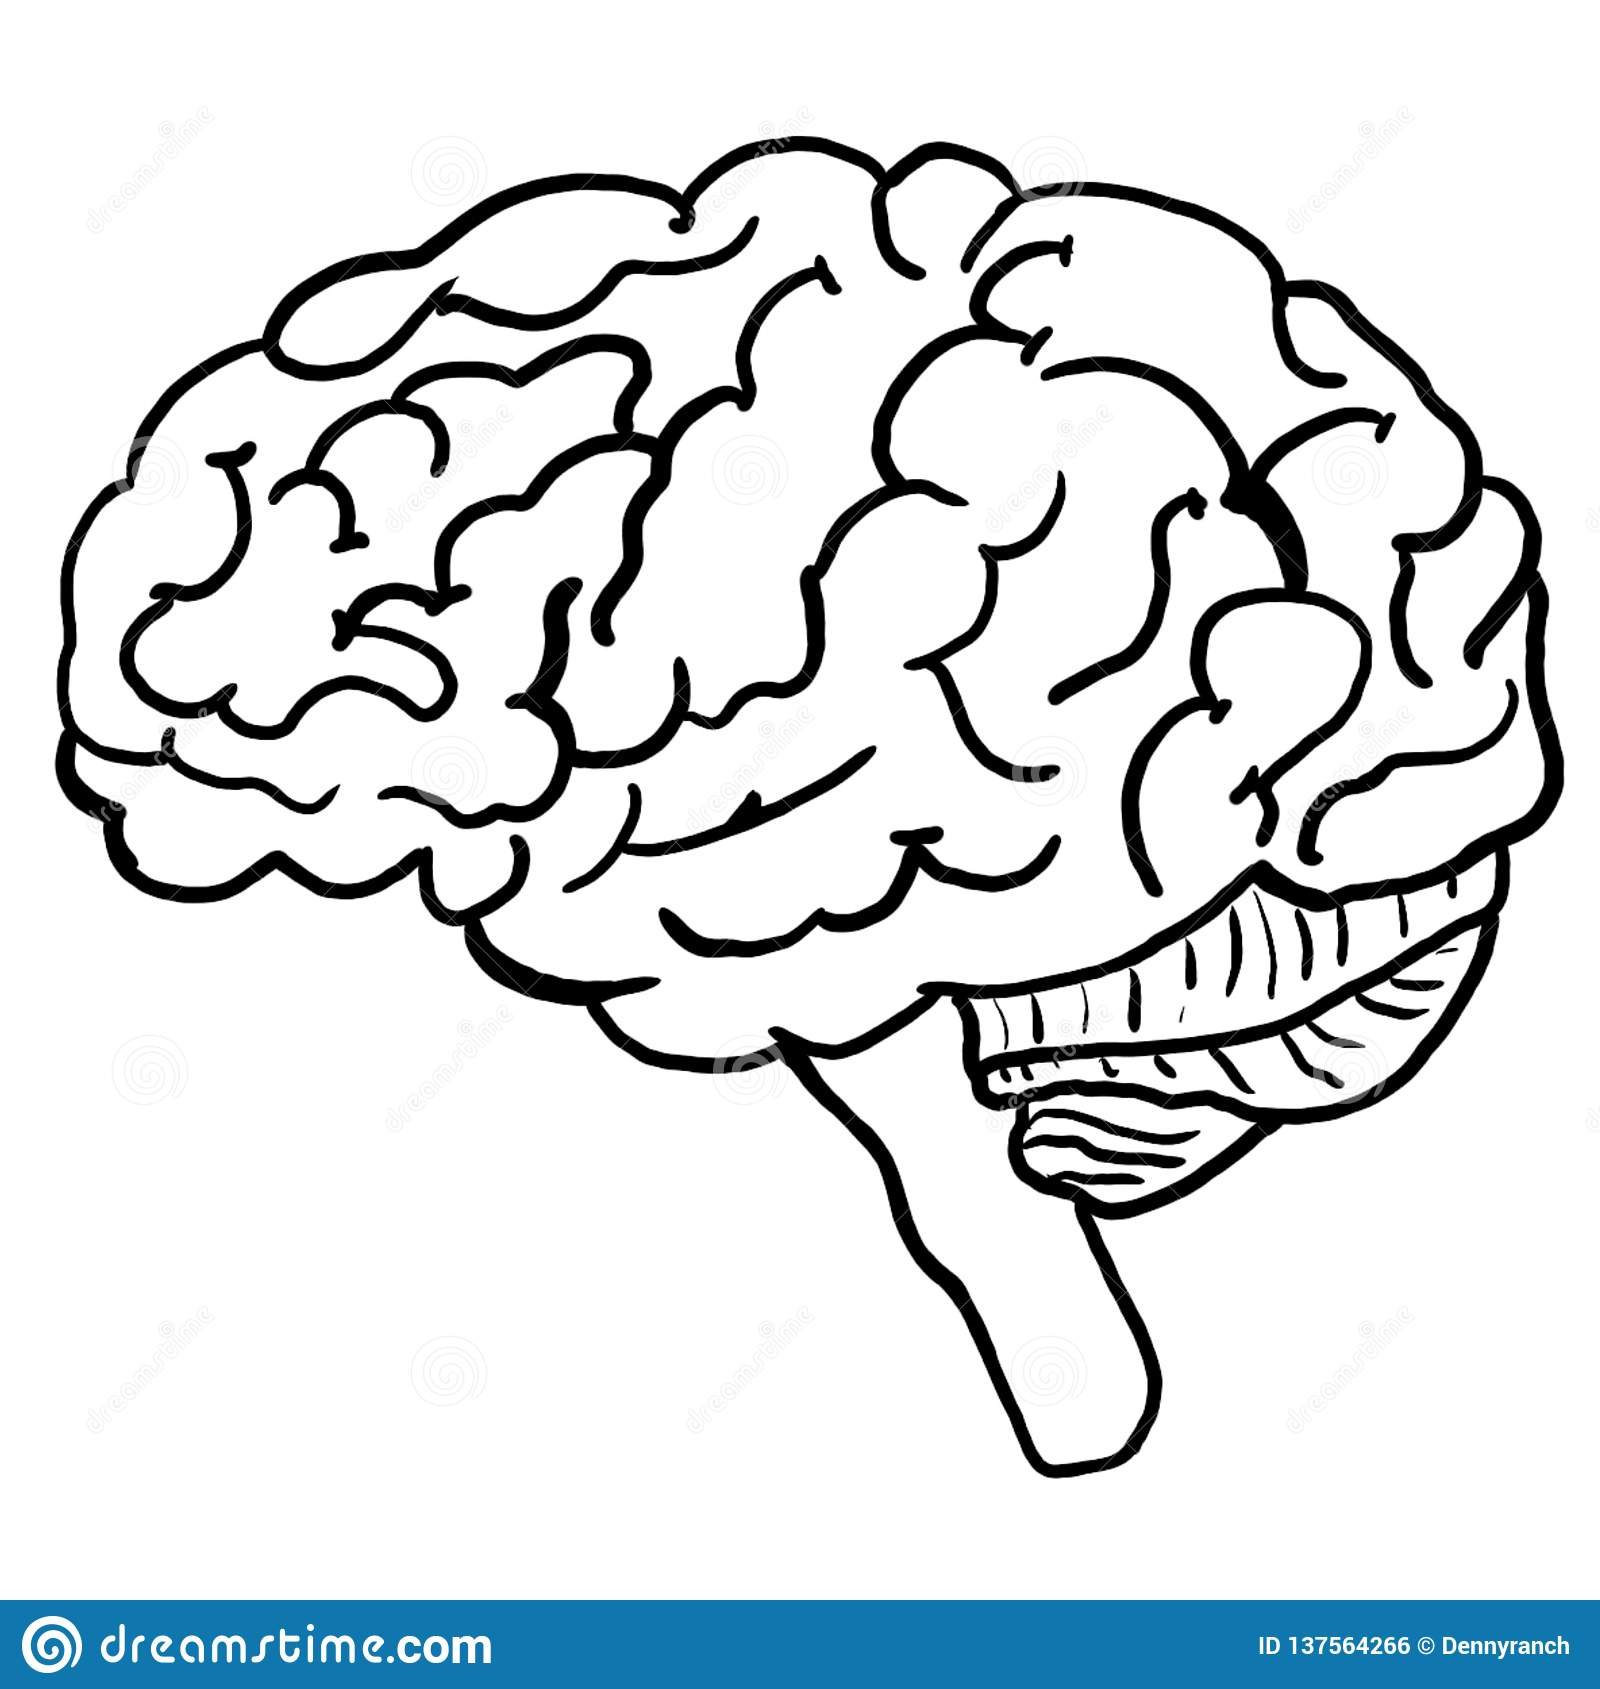 Illustration Of Human Brain Anatomy Coloring Page Stock